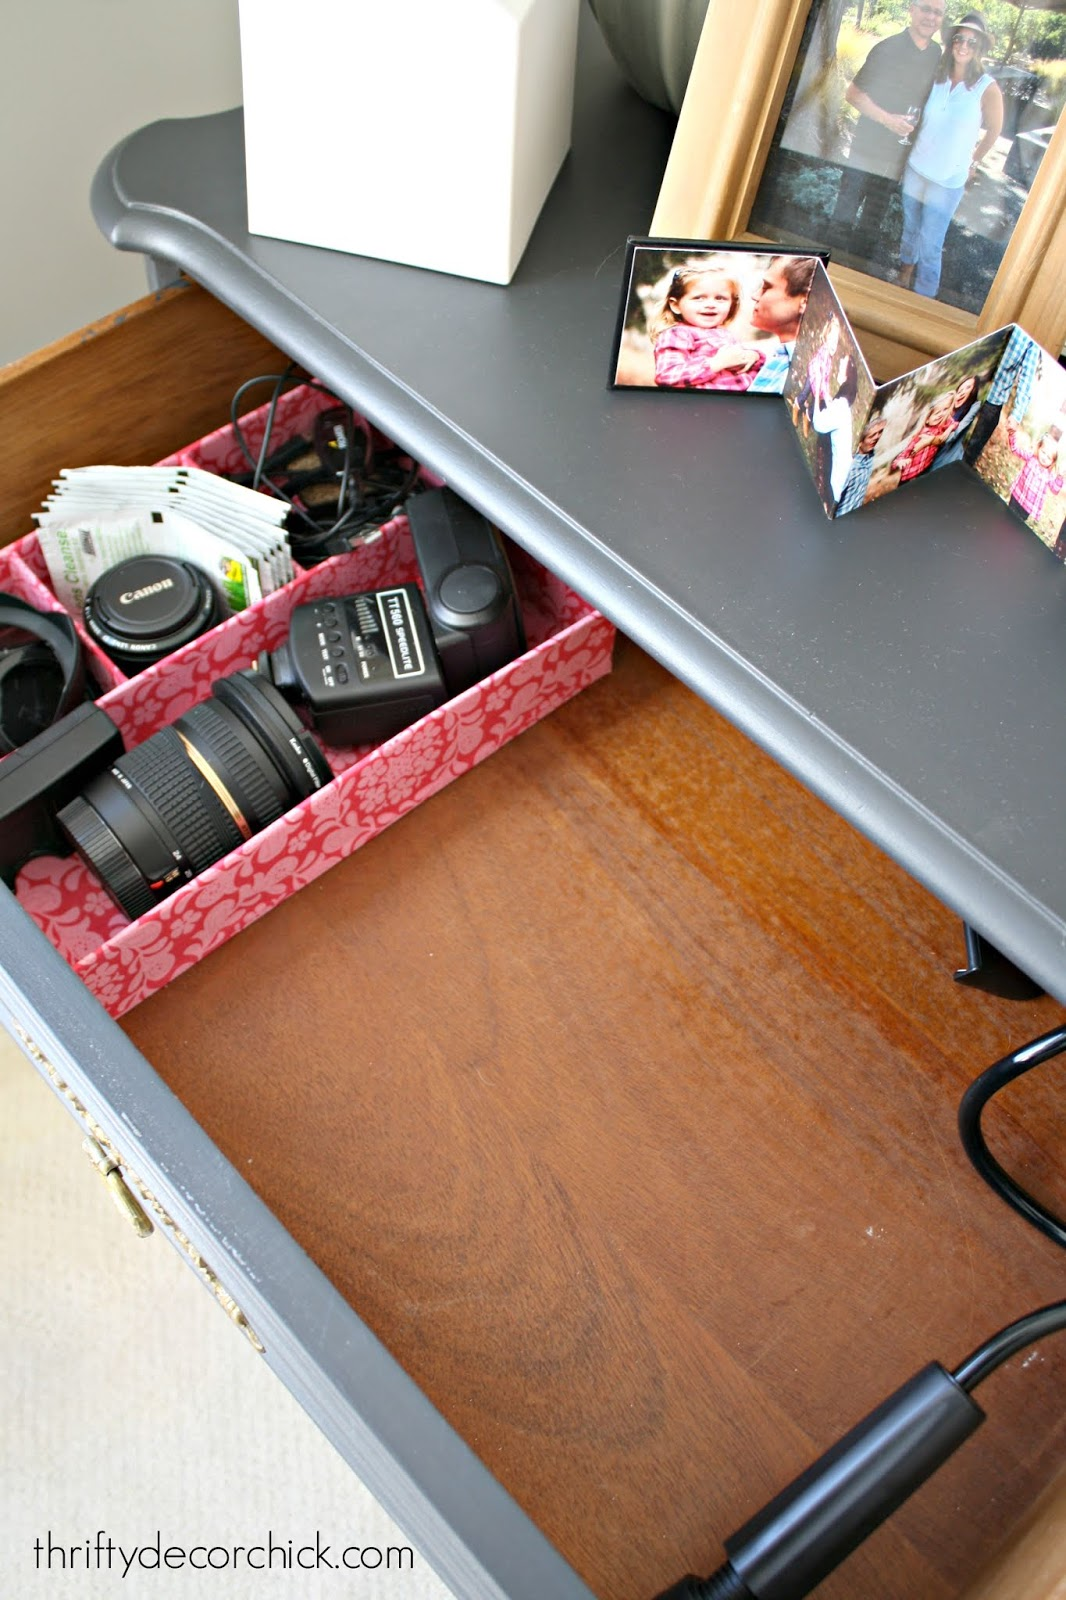 Decluttering and organizing office supplies